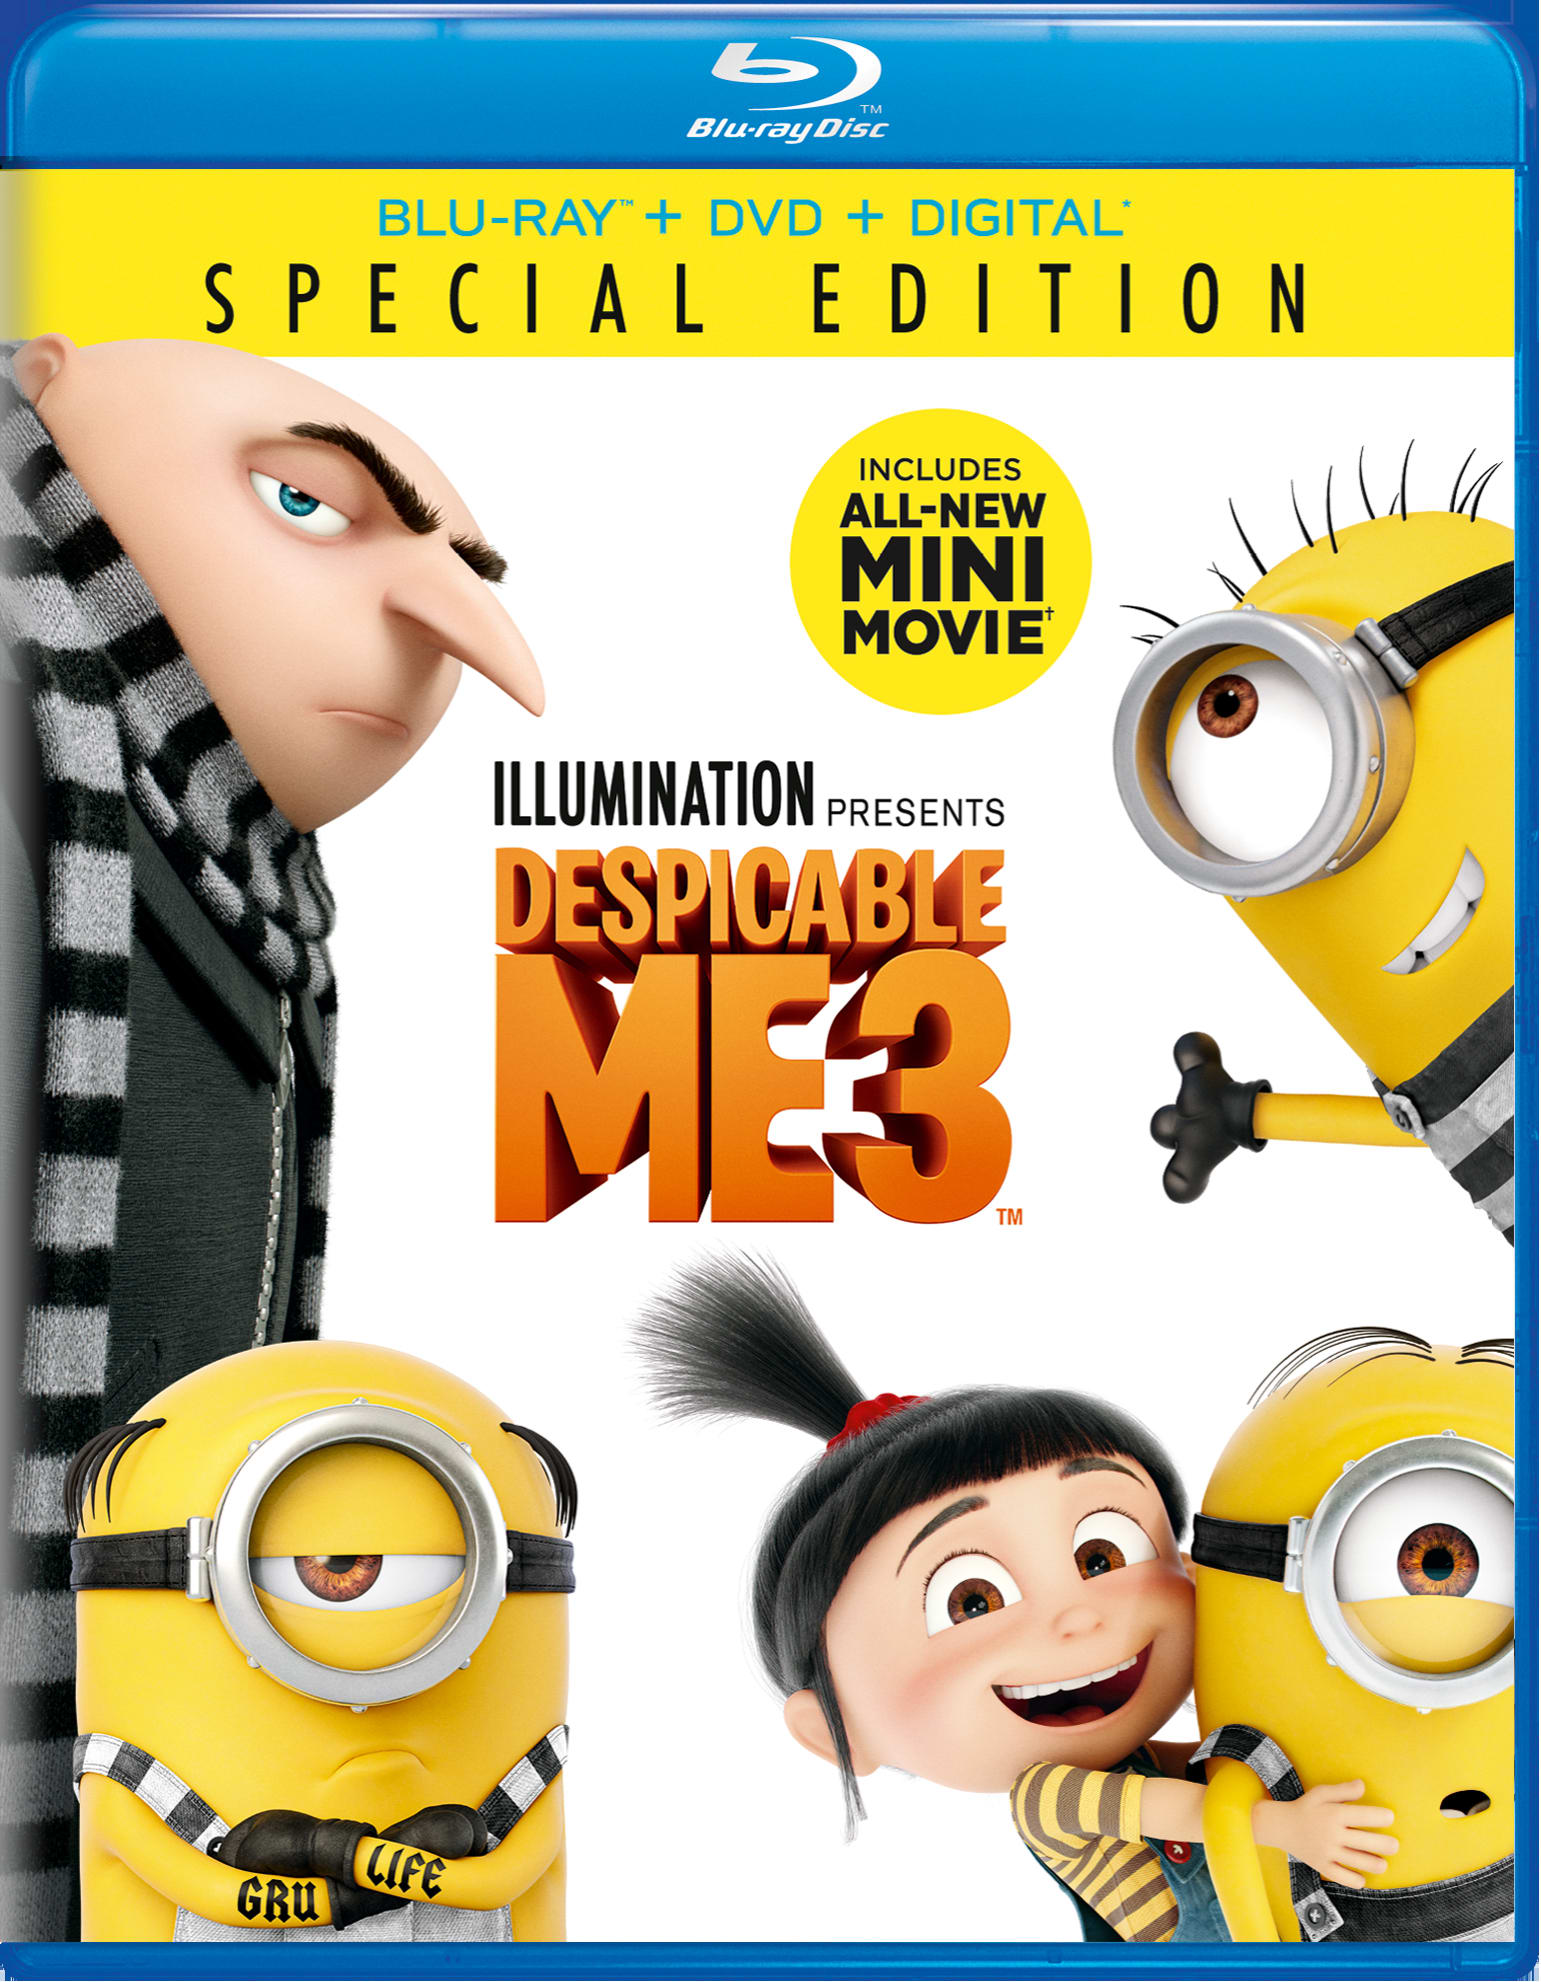 Despicable Me 3 (Special Edition DVD + Digital) [Blu-ray]